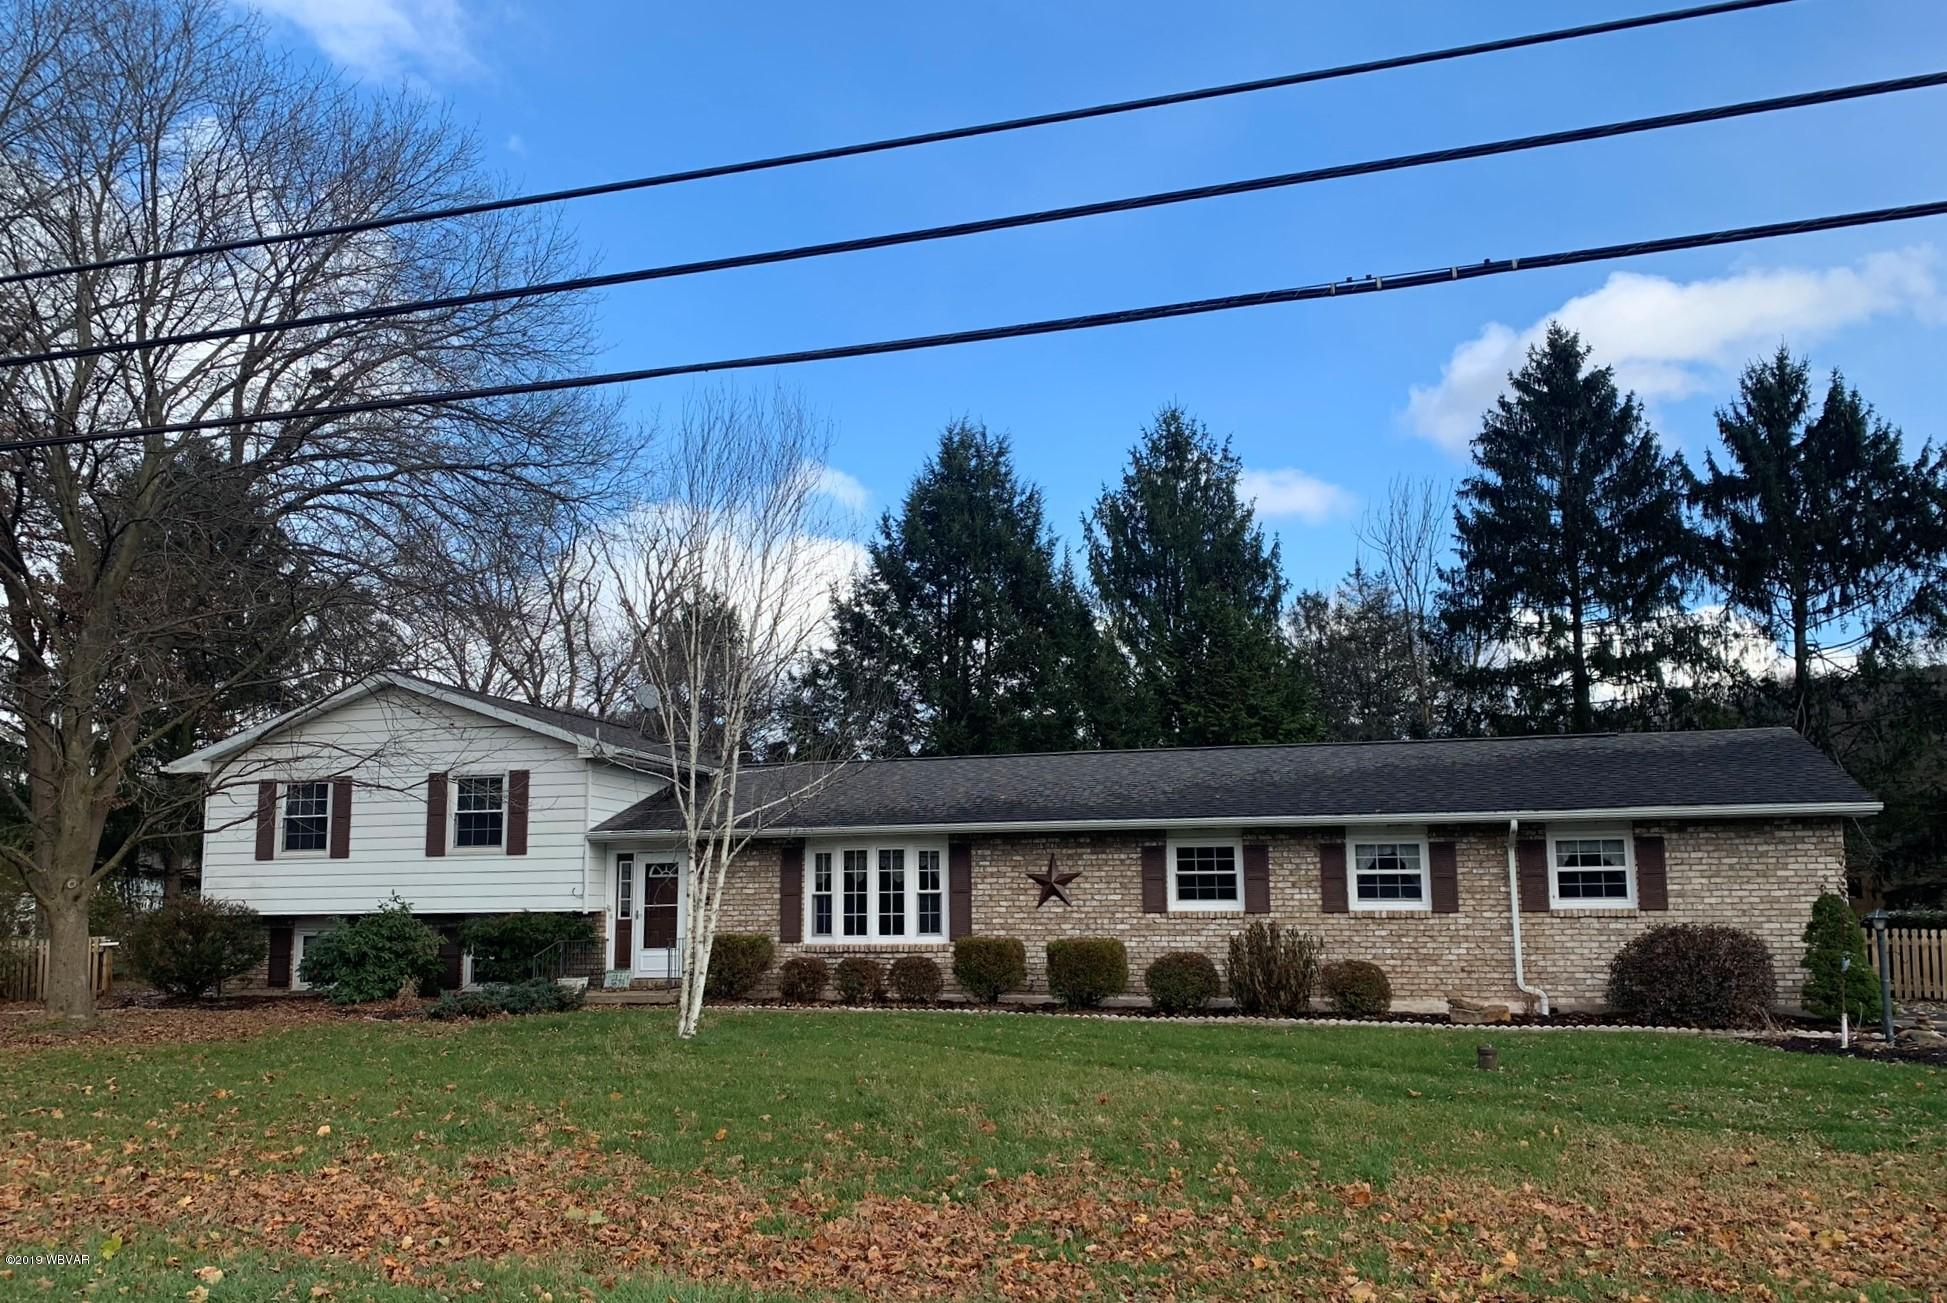 1918 RT 87 HIGHWAY,Montoursville,PA 17754,3 Bedrooms Bedrooms,2.5 BathroomsBathrooms,Residential,RT 87,WB-89100